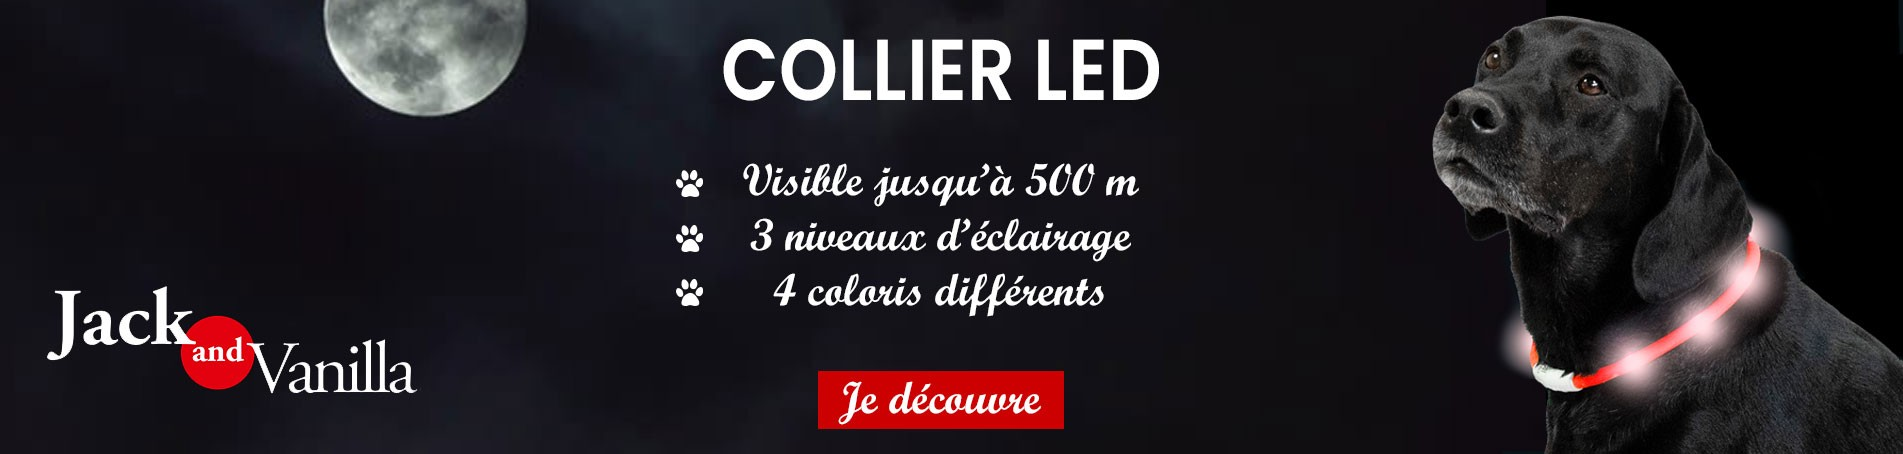 Collier pour chien LED Jack and Vanilla : Animaux-Market